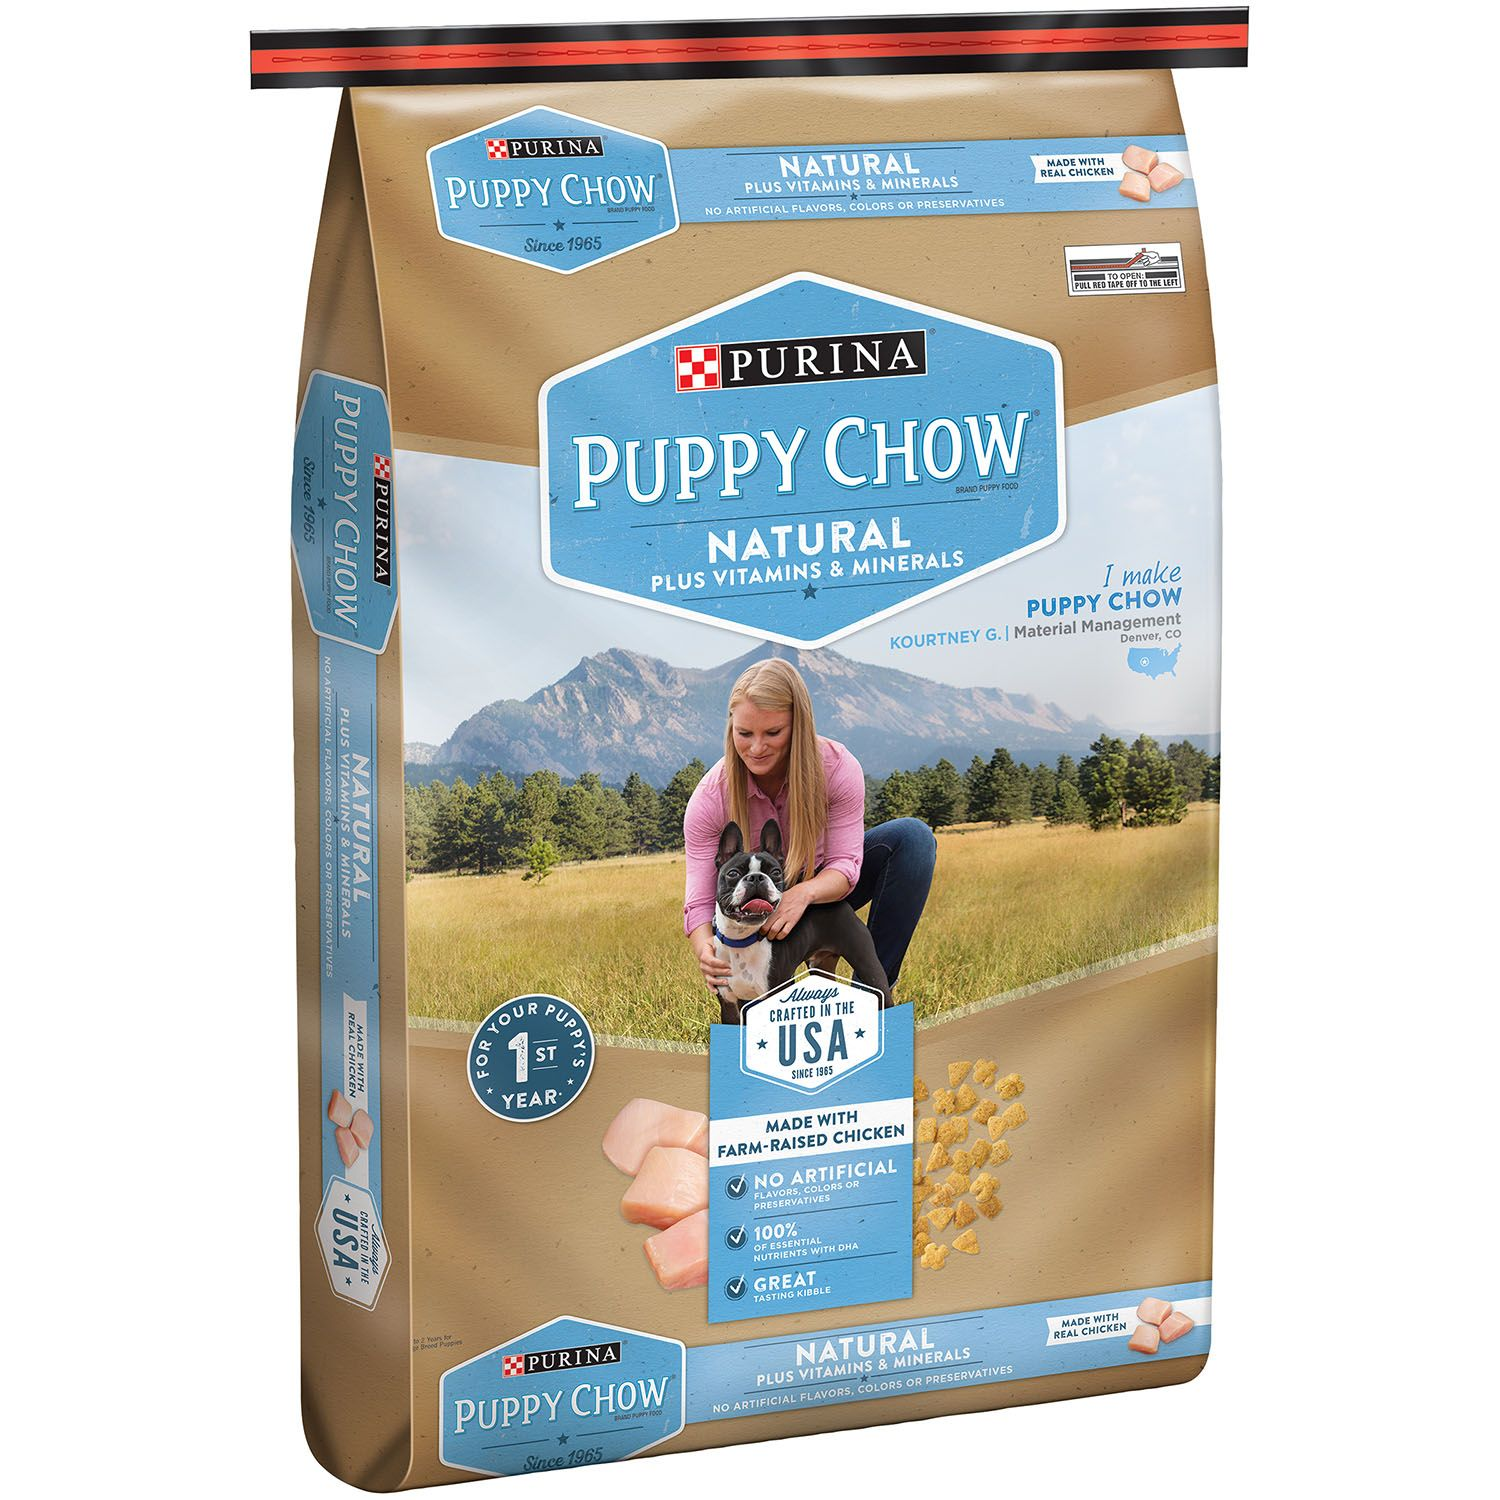 Pack of 2 Puppy Chow Natural with Farm-Raised Chicken Dry Puppy Food (15.5 lbs.) by Unbranded